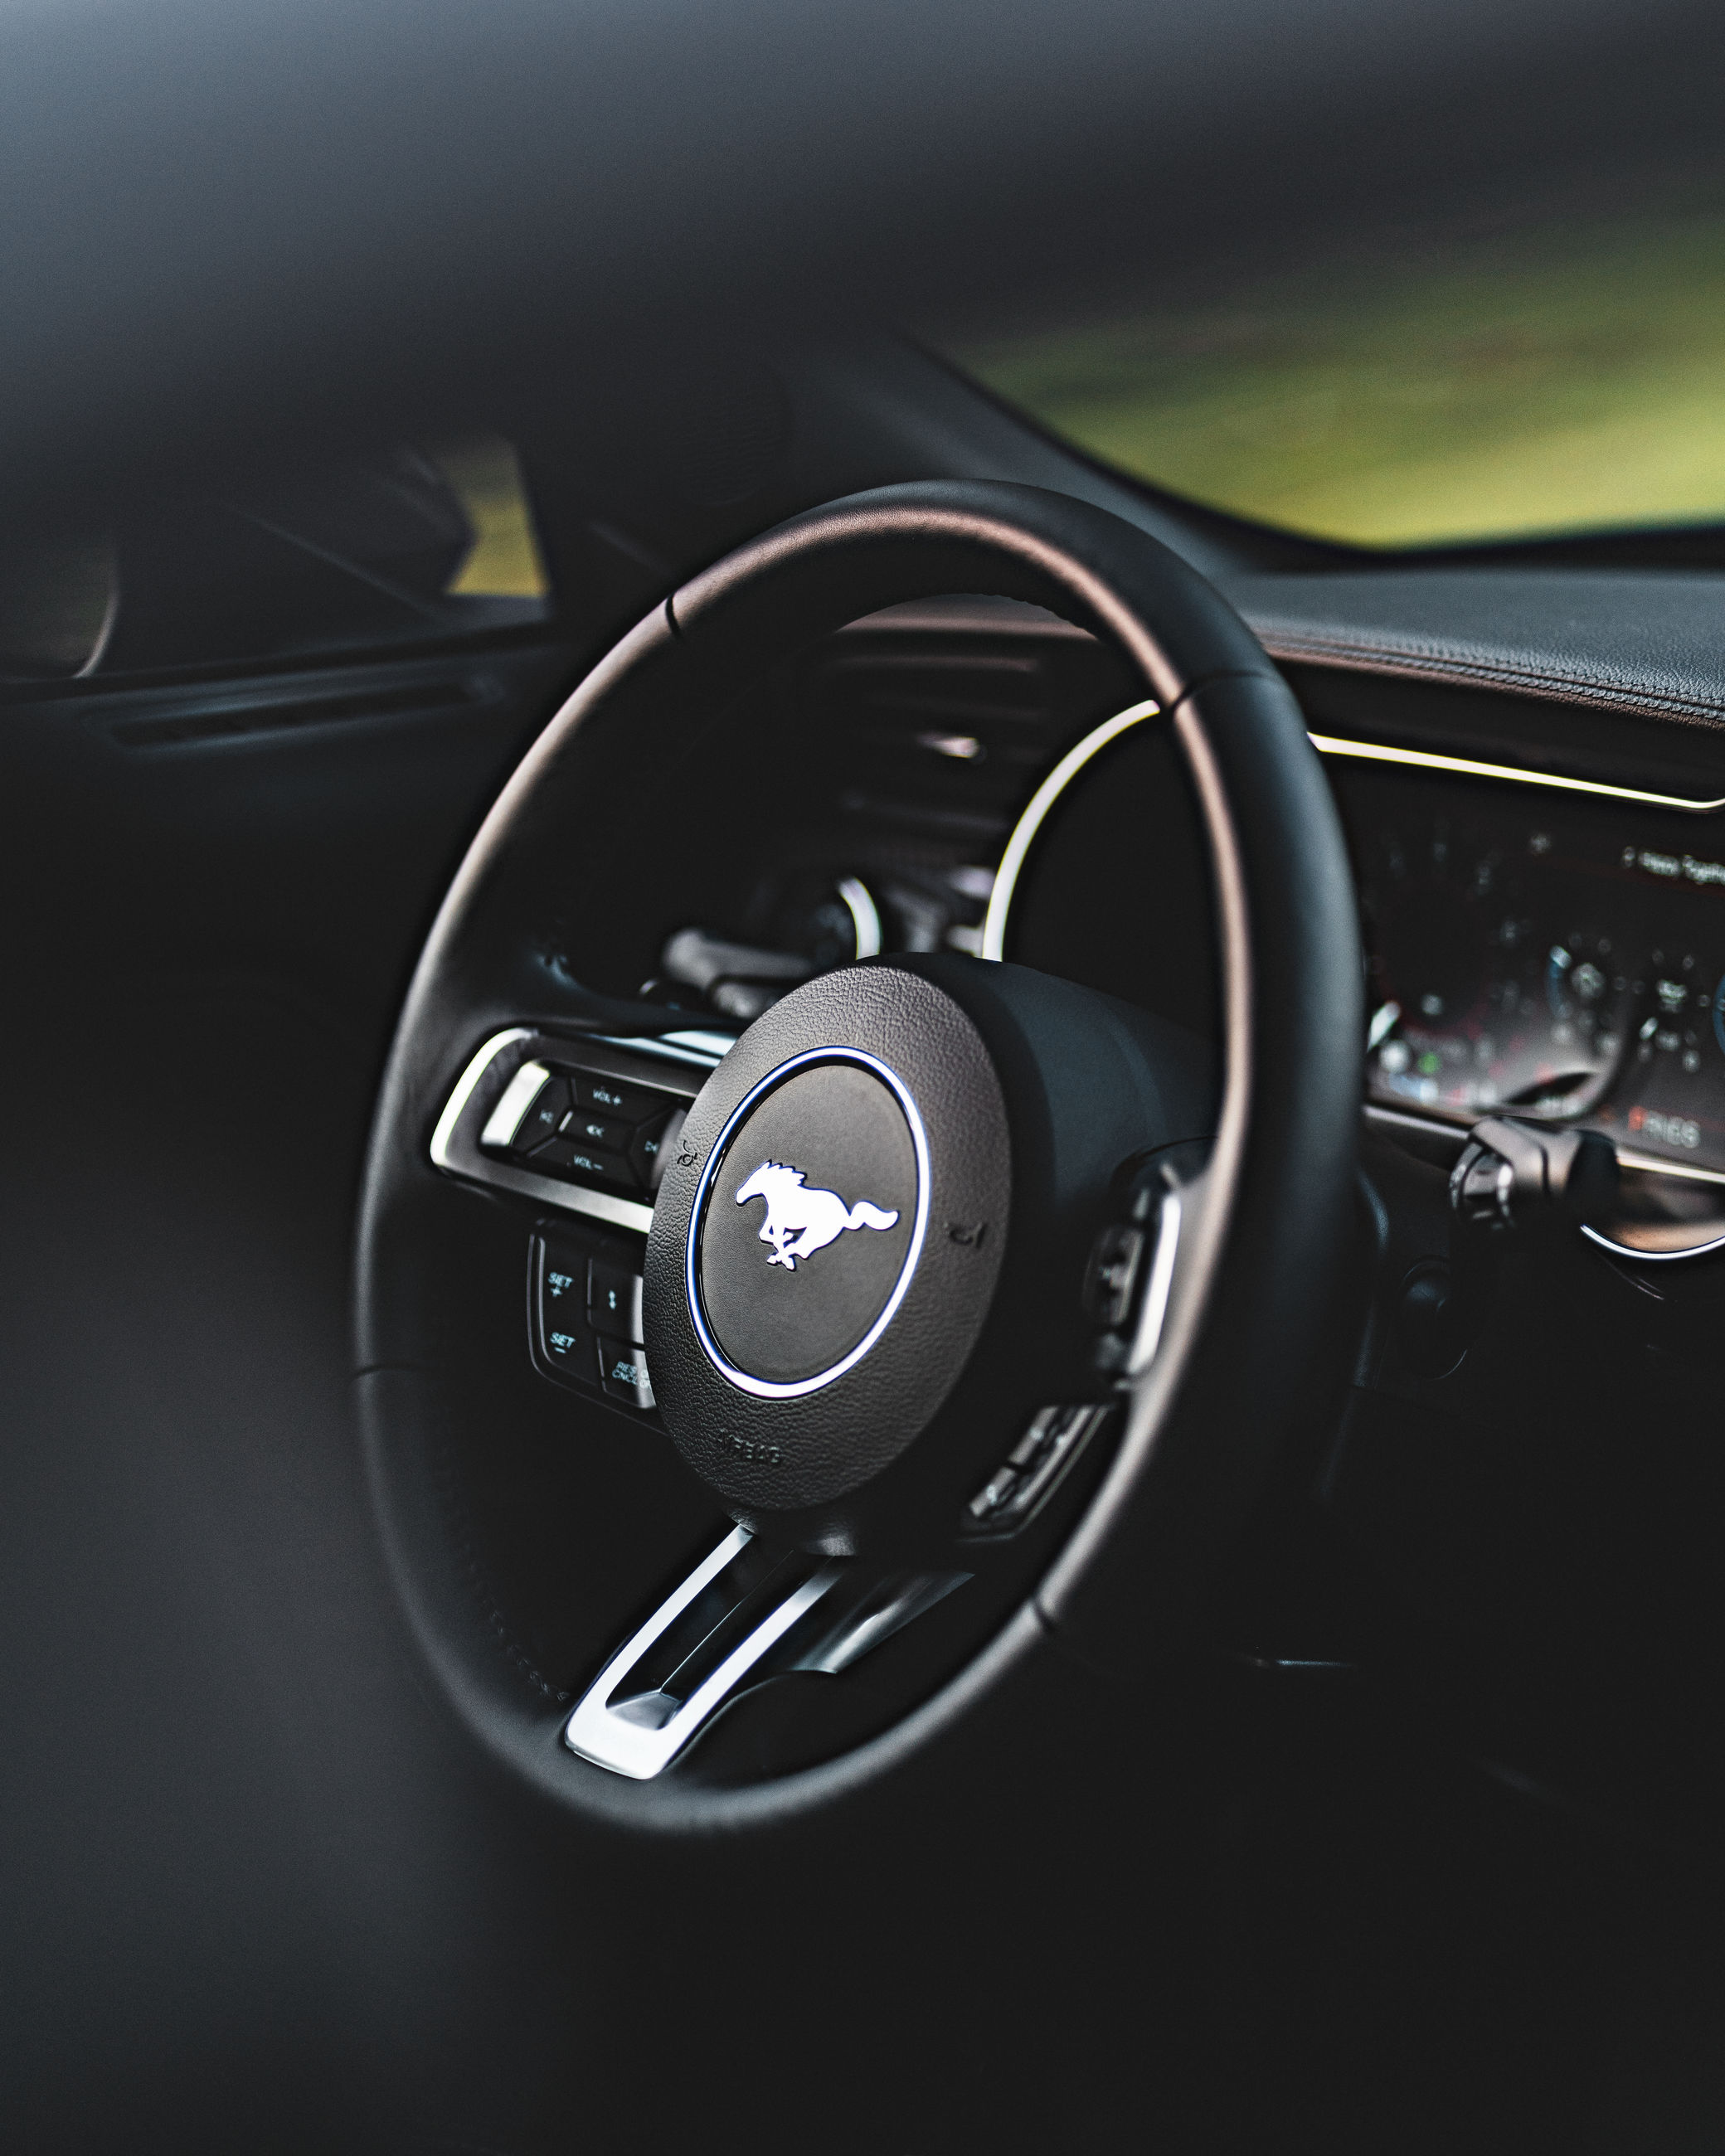 car, vehicle, land vehicle, mode of transportation, motor vehicle, transportation, car interior, vehicle interior, control panel, automobile, dashboard, luxury vehicle, speedometer, sports car, indoors, close-up, steering wheel, speed, wheel, black, gear shift, no people, technology, control, family car, luxury, vehicle part